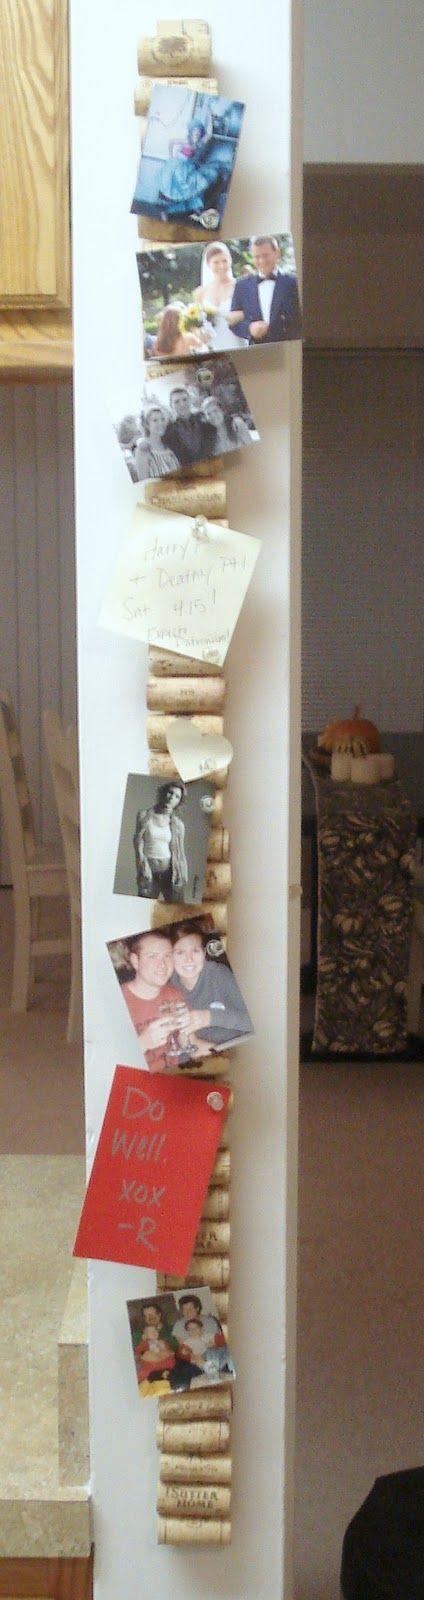 Corks on a yard stick and you get a vertical cork board.